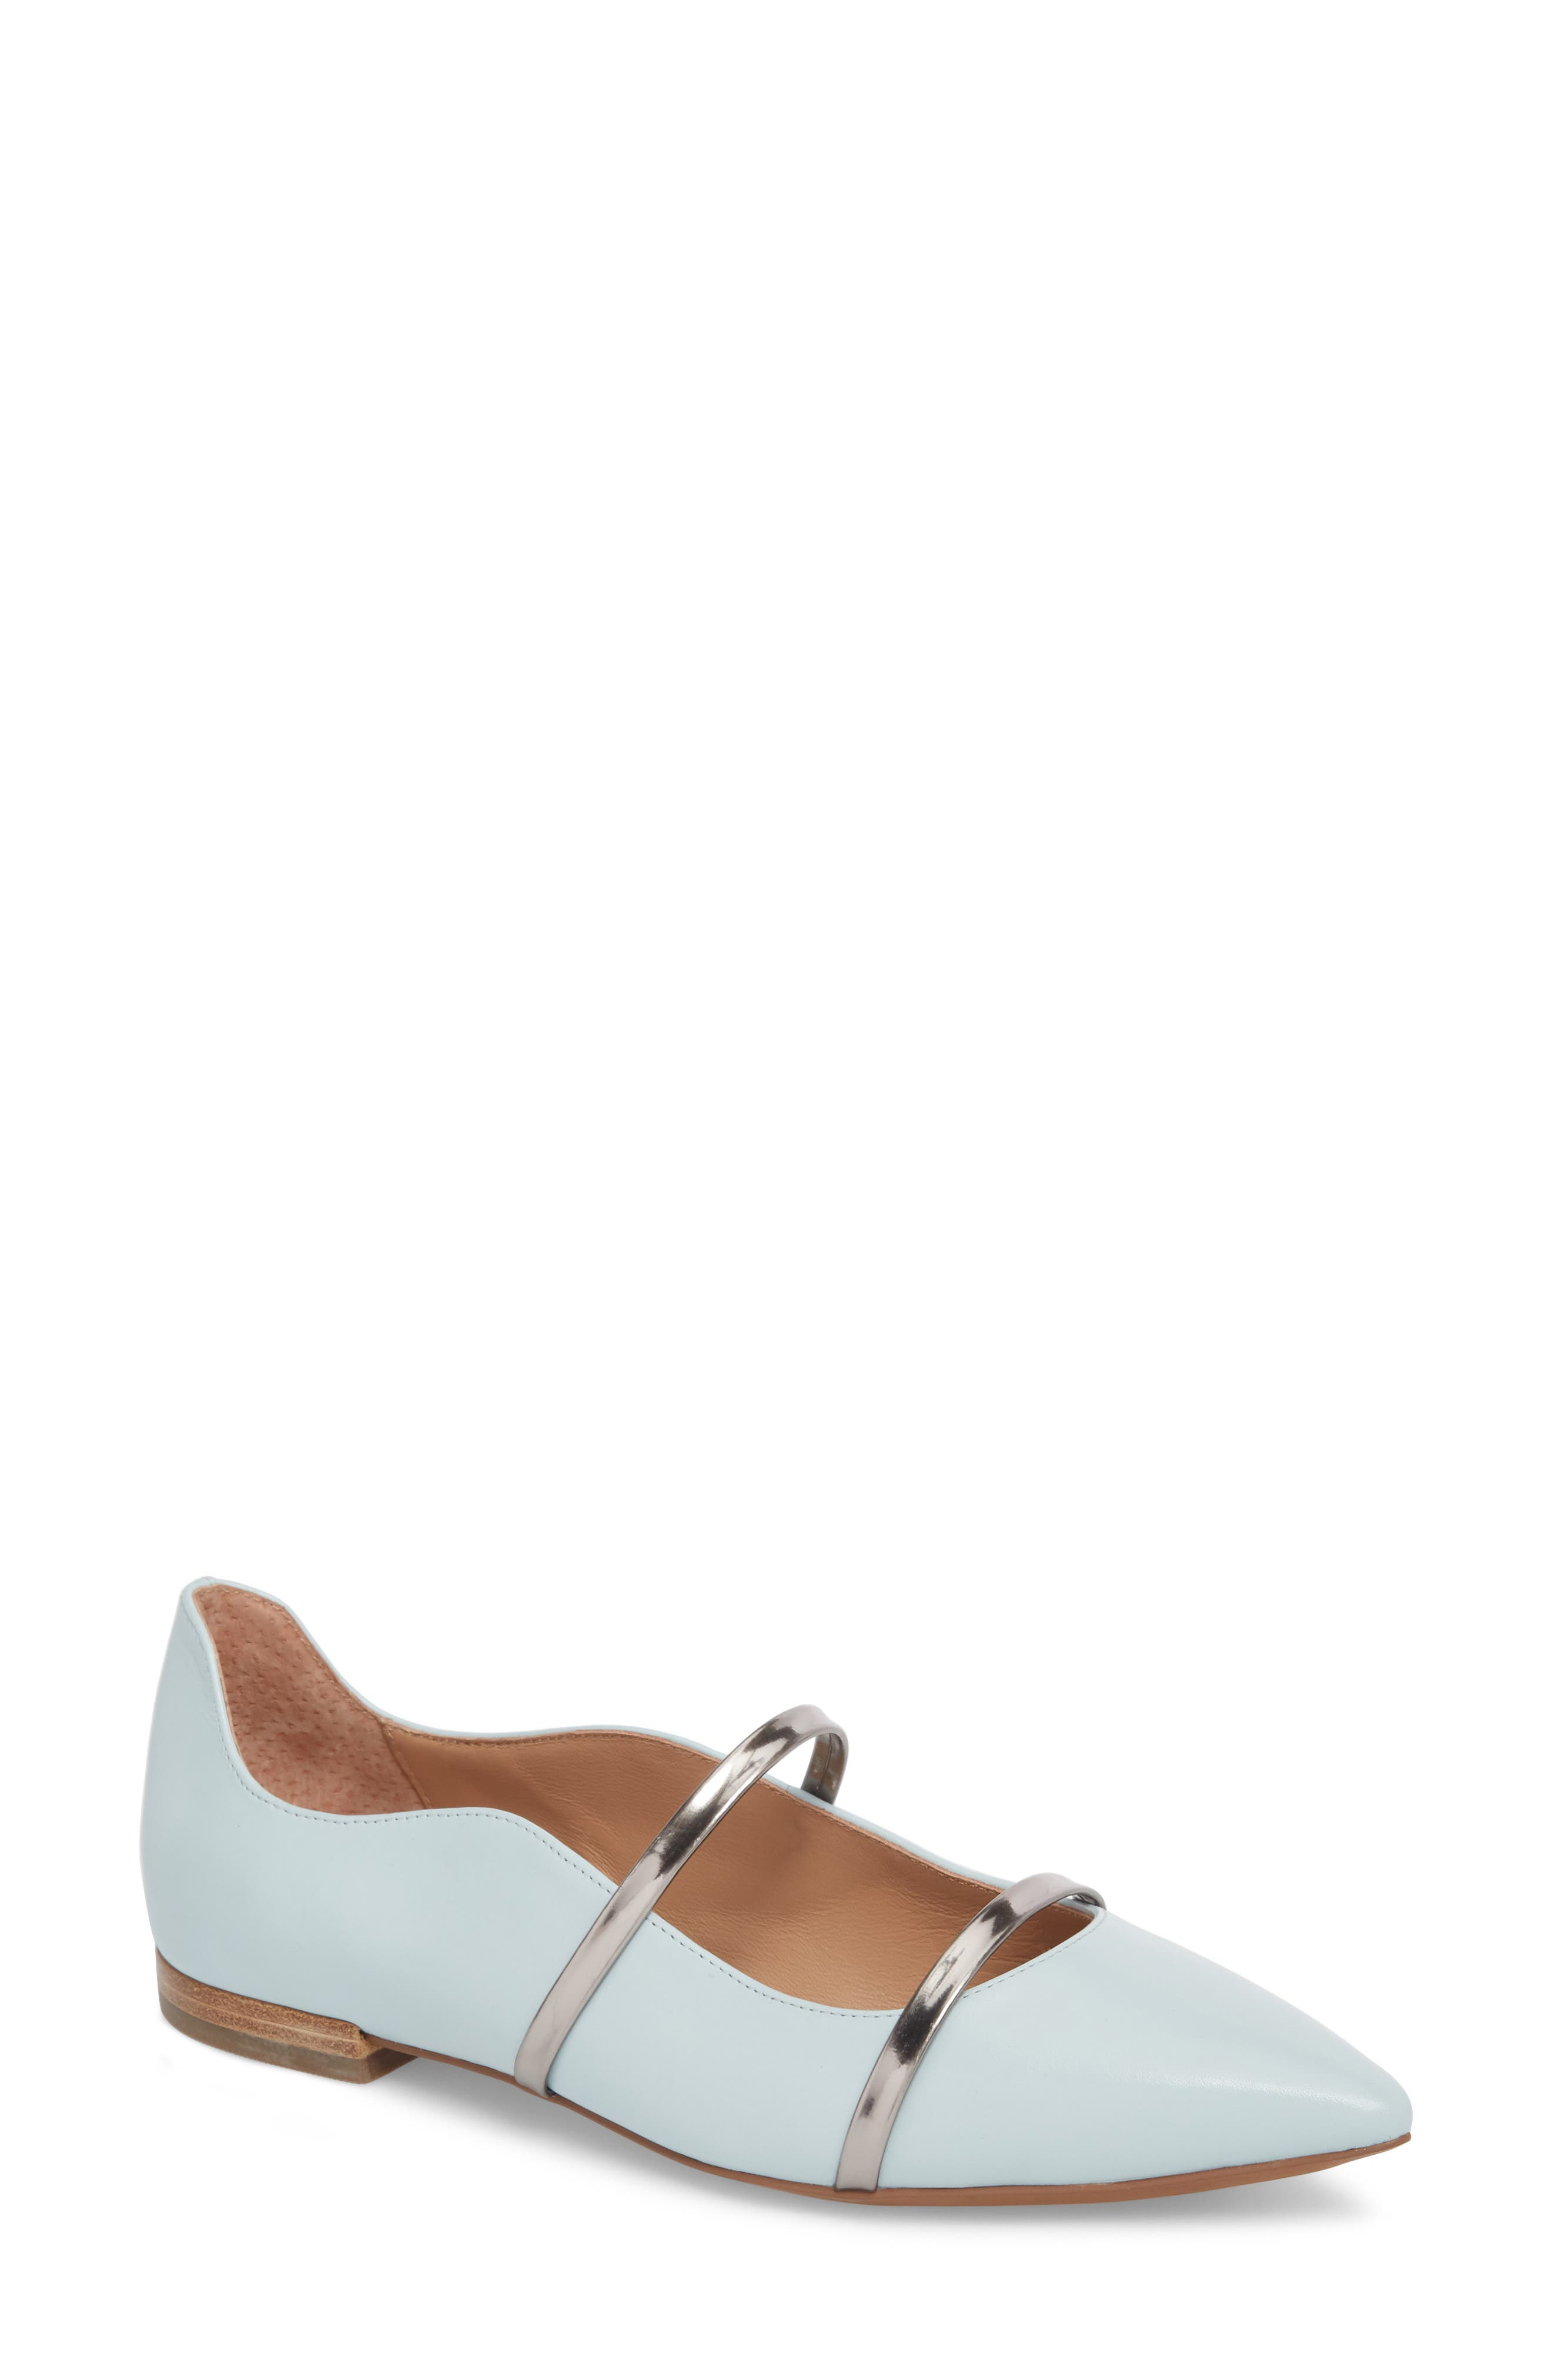 Emily Pointy Toe Flat,                             Main thumbnail 1, color,                             Pale Blue/ Gunmetal Leather